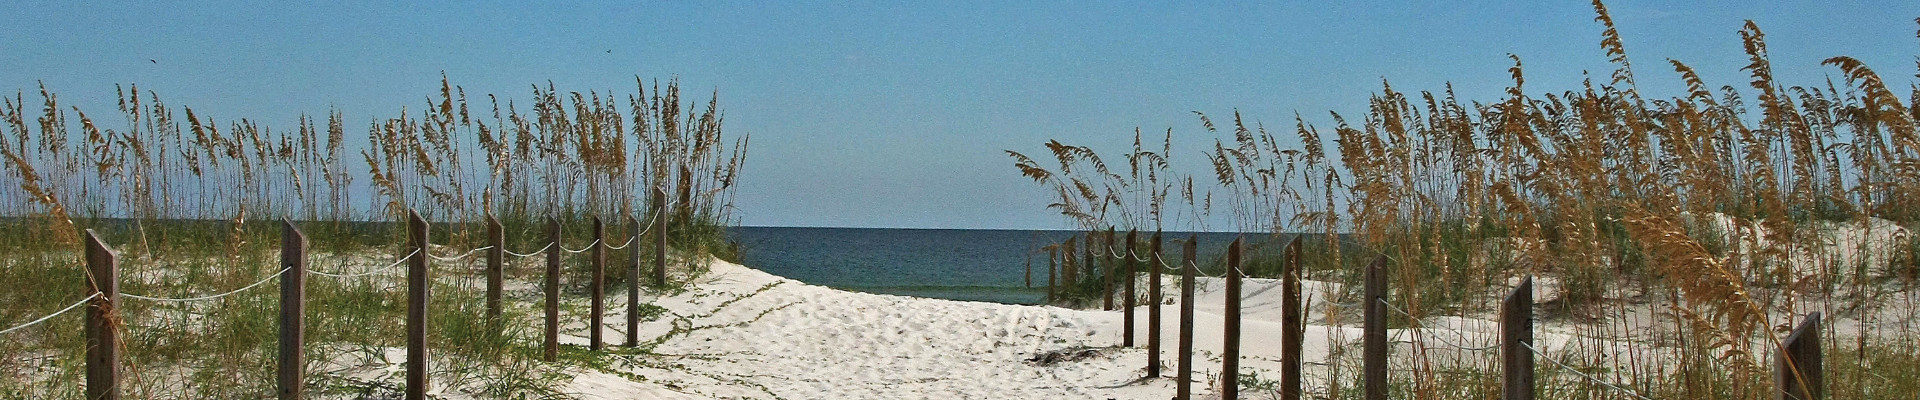 st george island beach slide